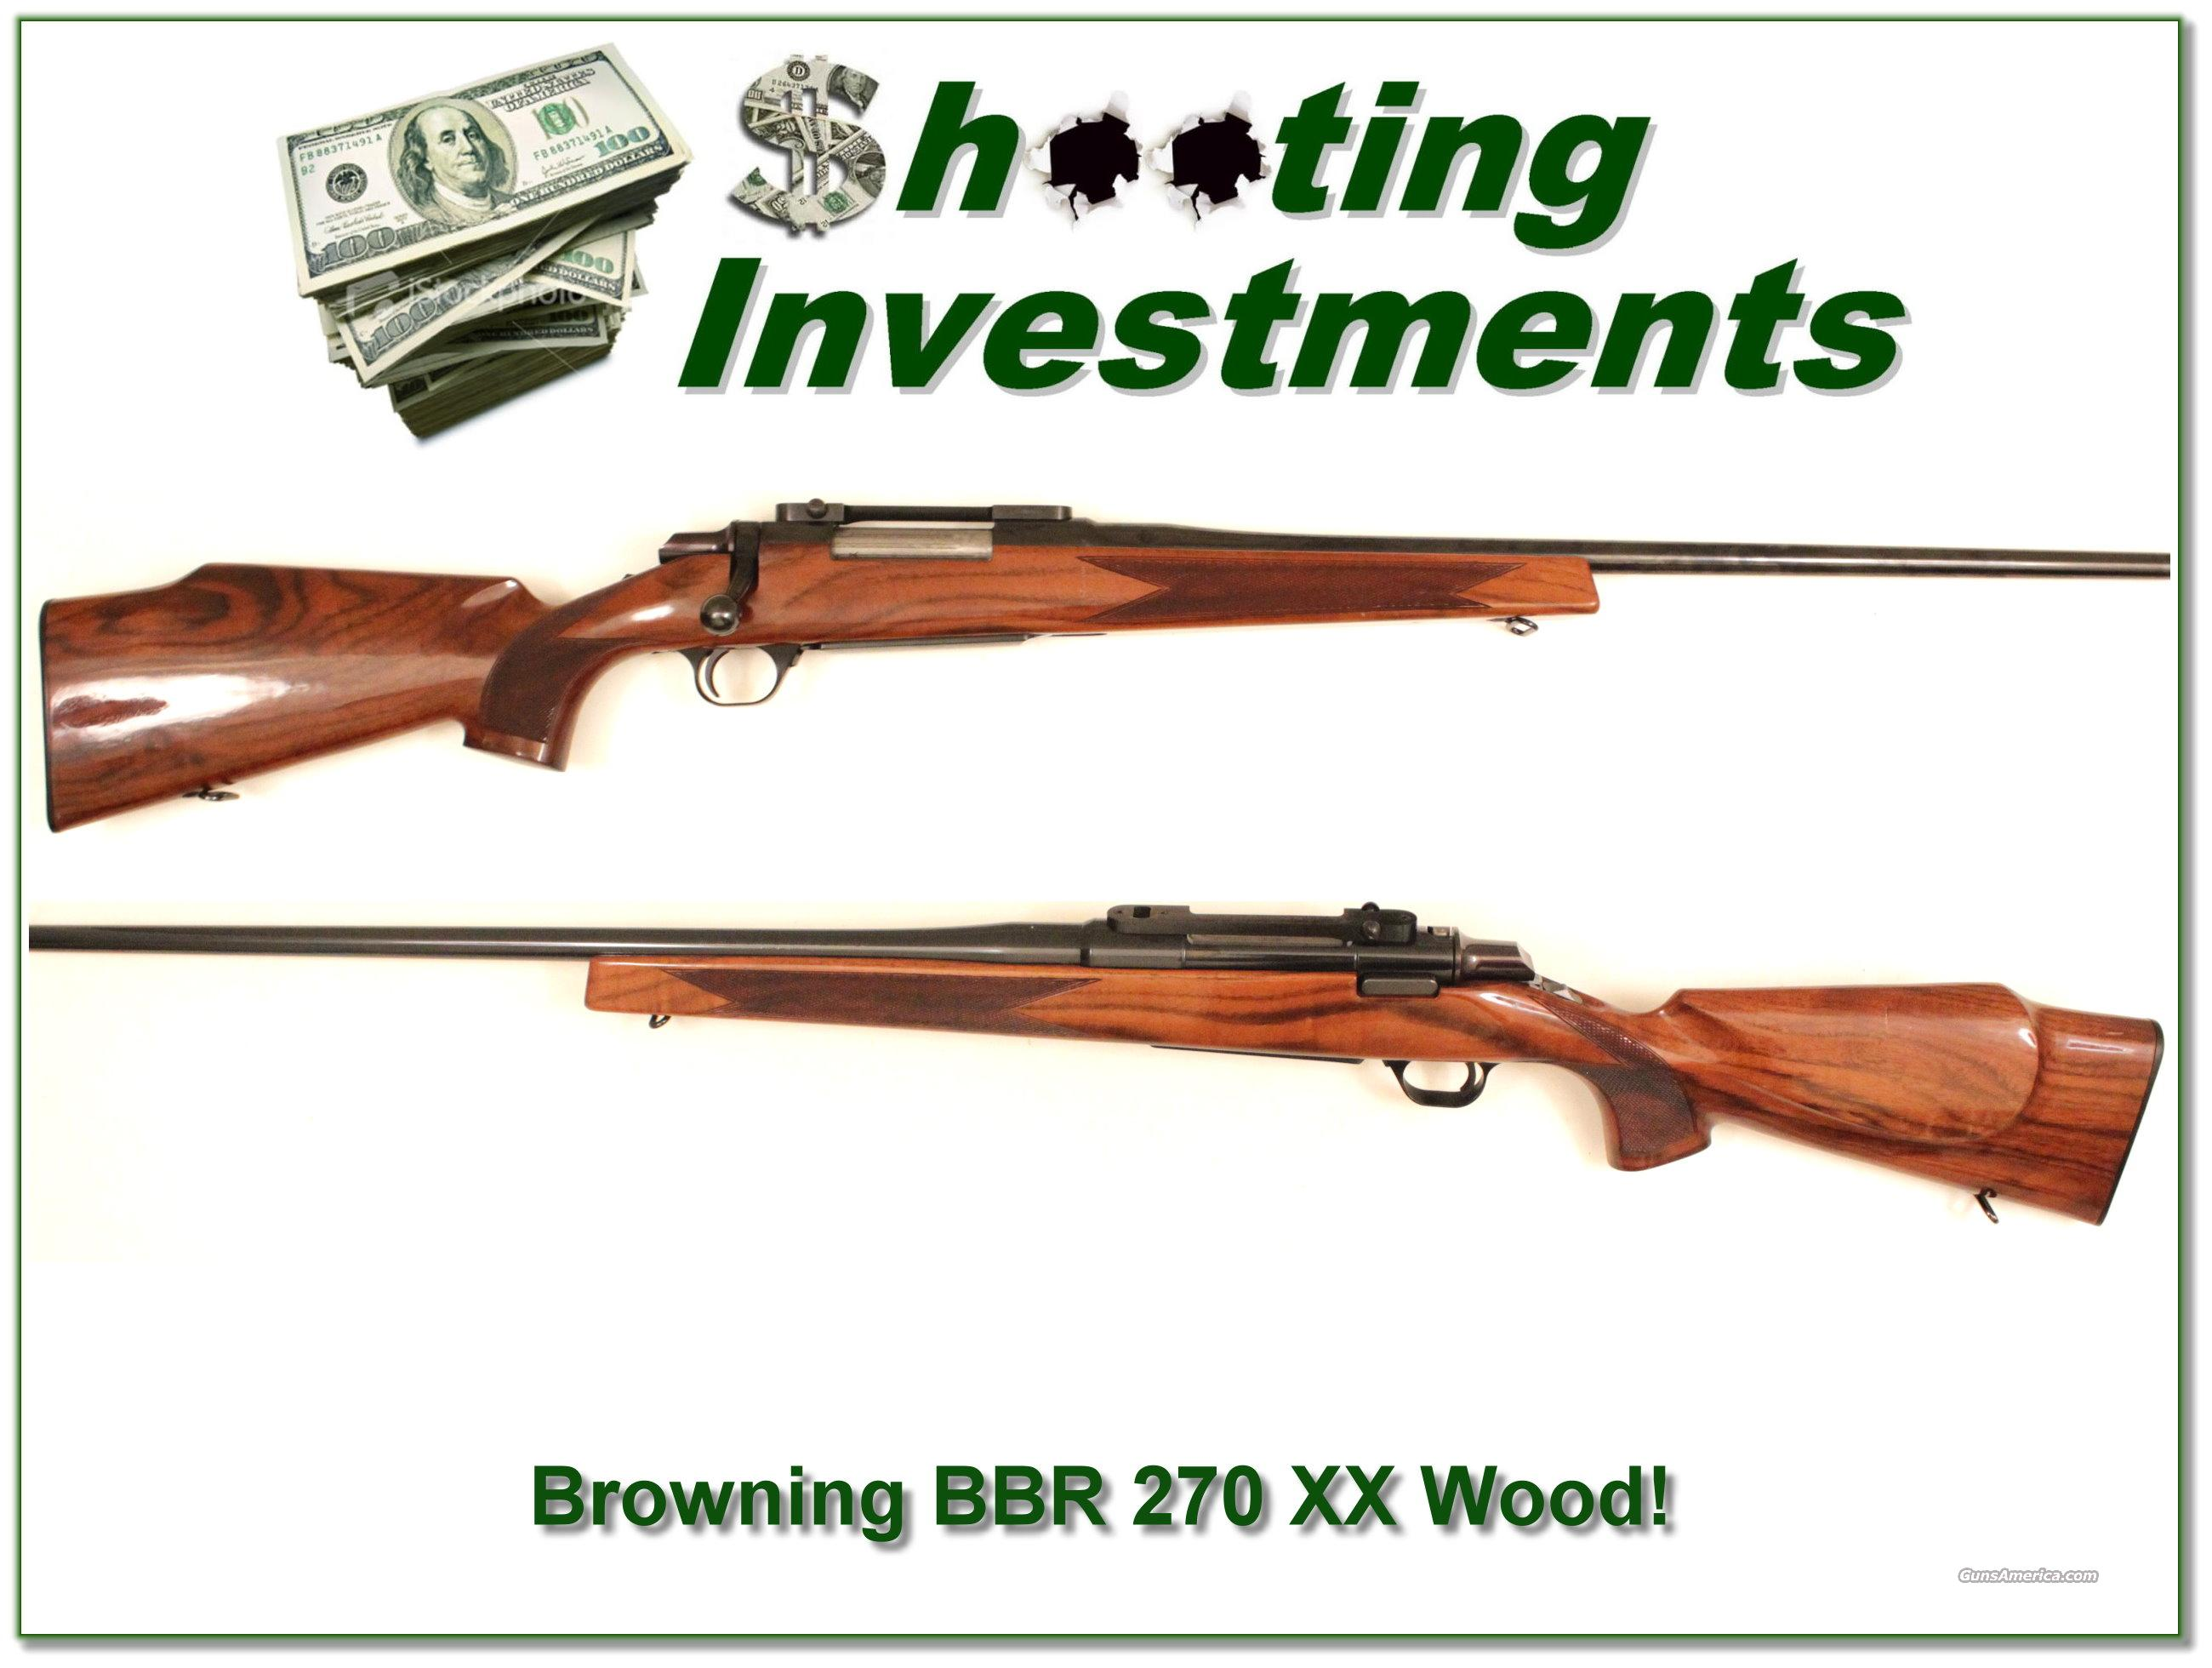 Browning BBR 270 near new XXX Wood!  Guns > Rifles > Browning Rifles > Bolt Action > Hunting > Blue